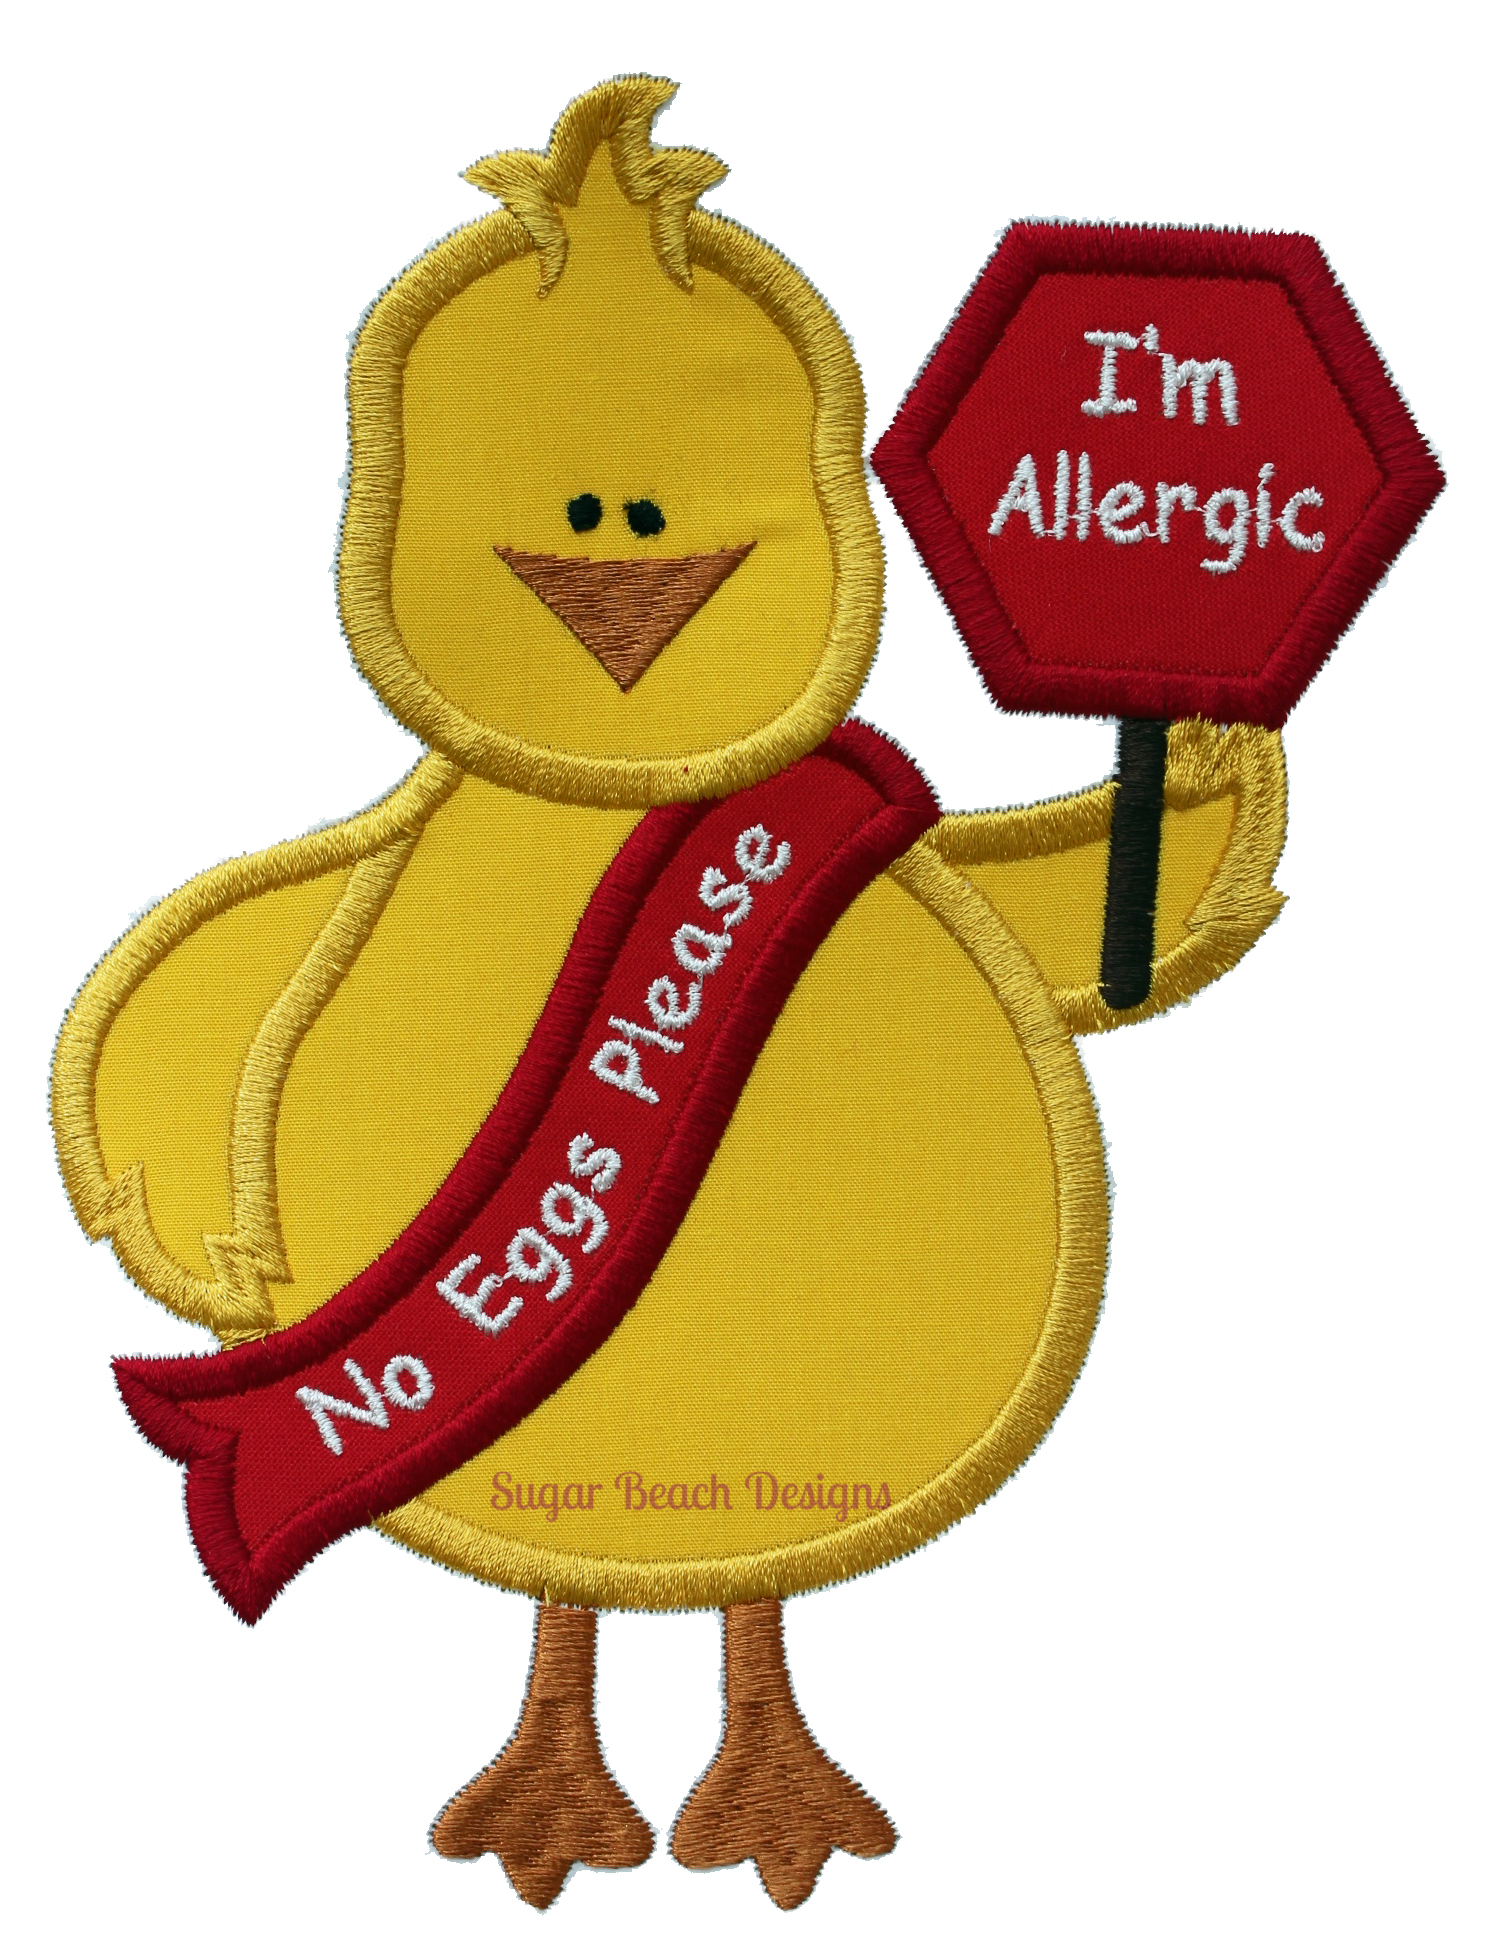 Chicken Allergic to Eggs-Chicken Eggs Allergy Health